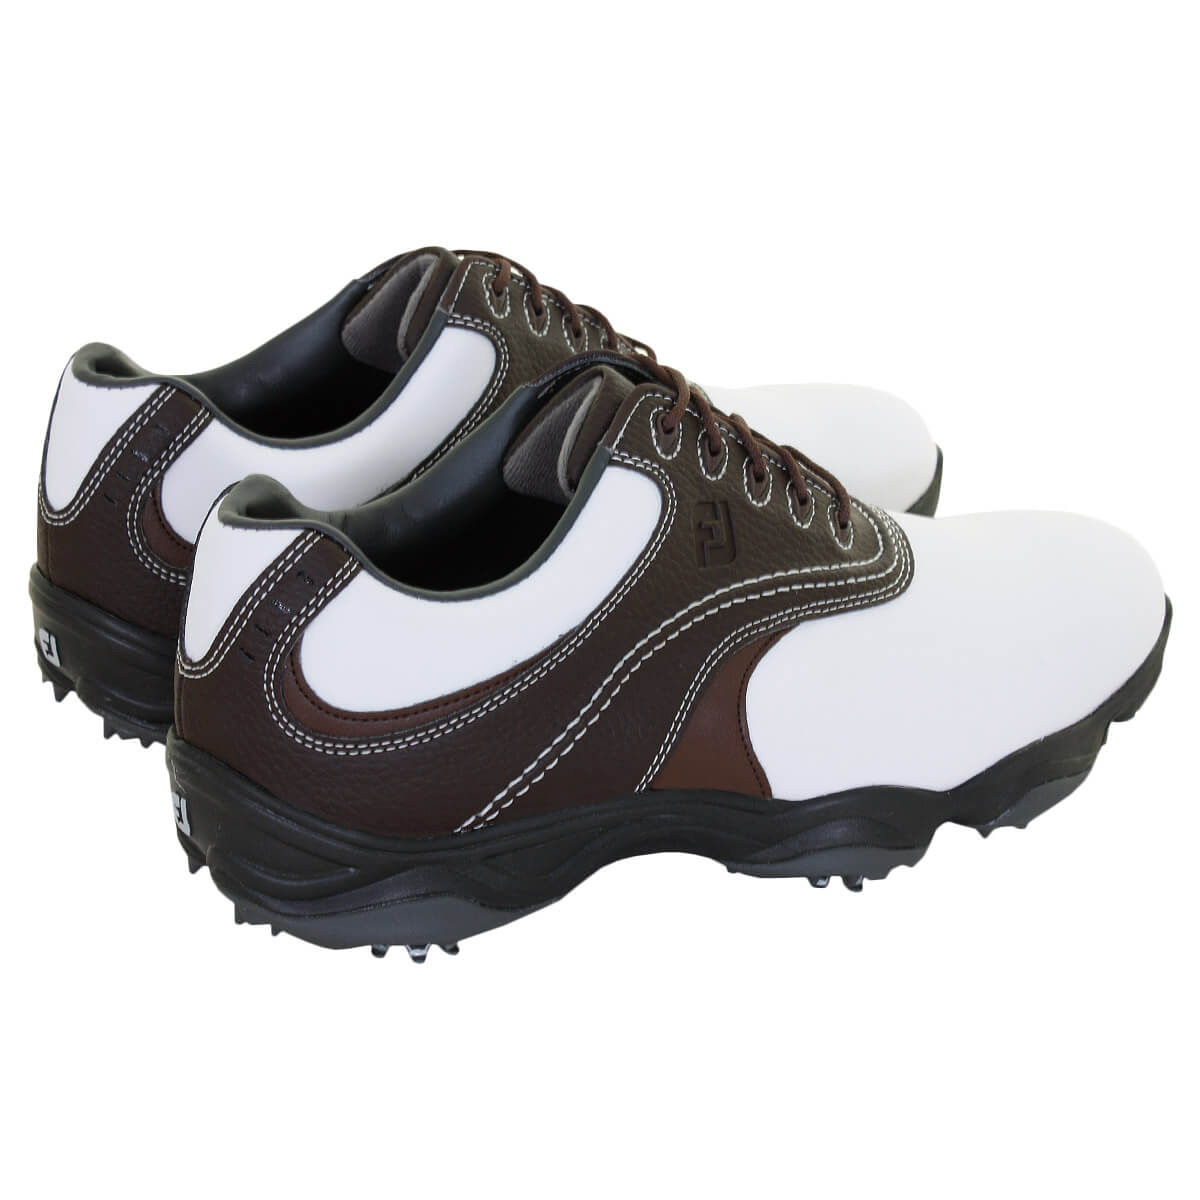 Footjoy-Mens-2019-FJ-Originals-Leather-Waterproof-Spiked-Golf-Shoes-38-OFF-RRP thumbnail 16